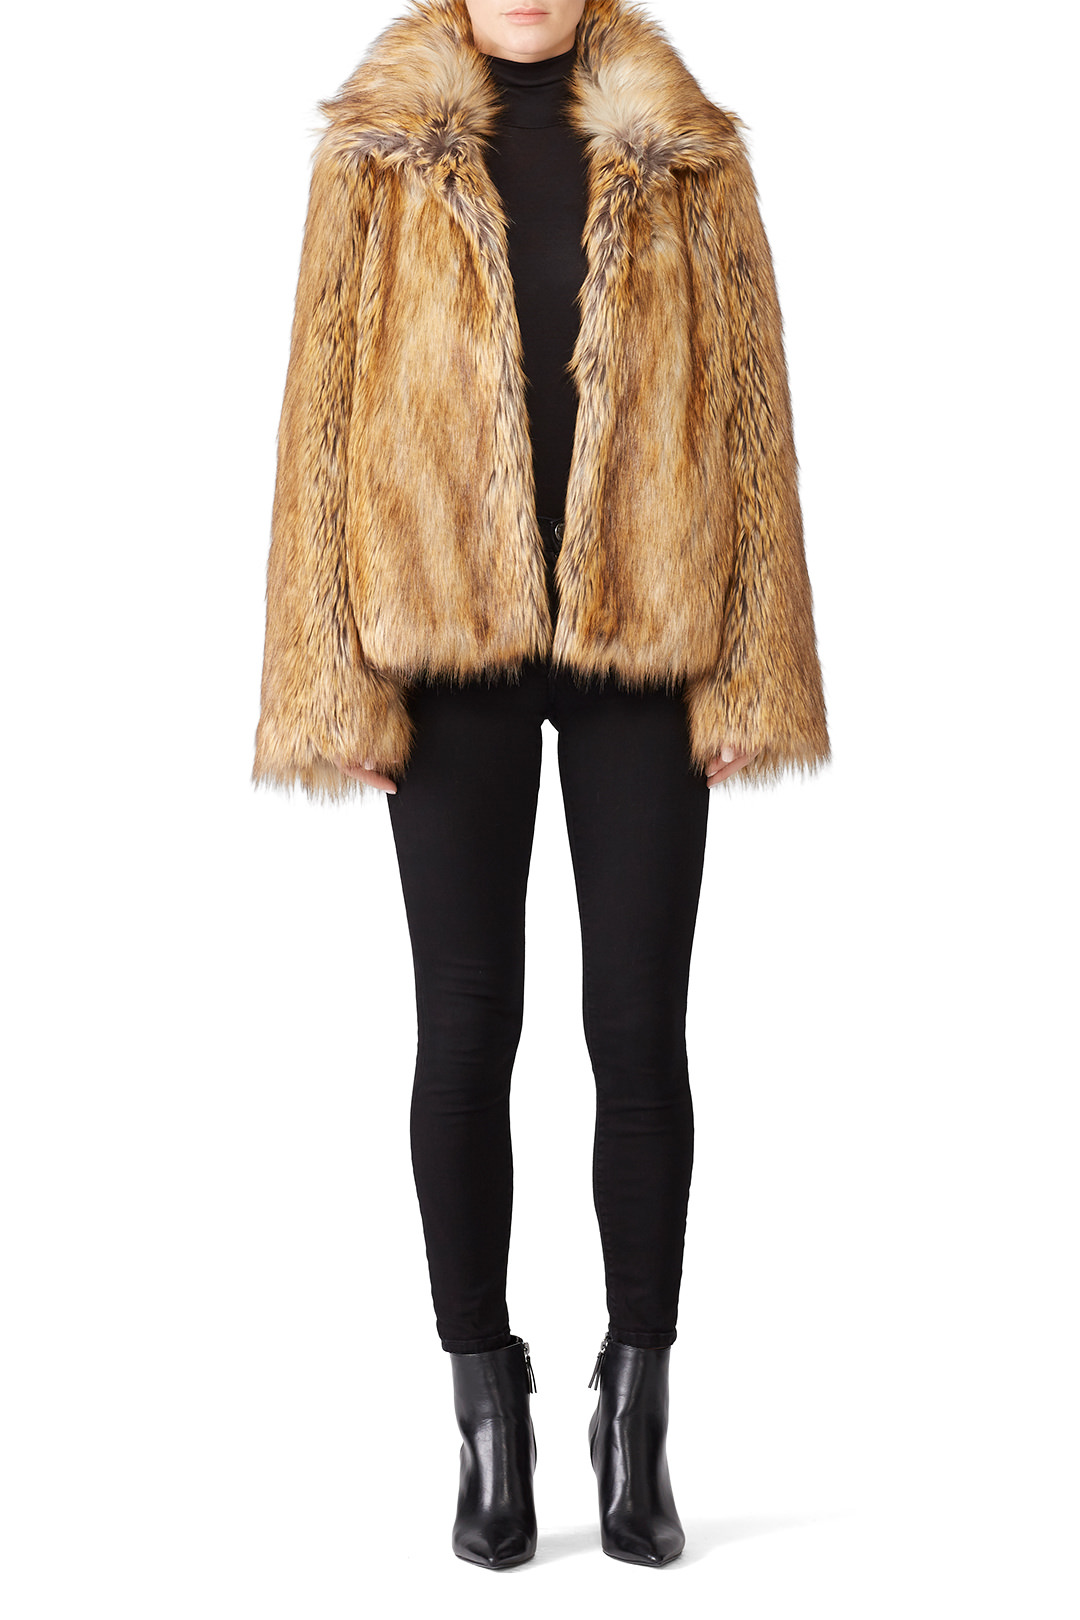 Zadig & Voltaire Fury Faux Fur Coat - I wore this bad boy to death on my trip to Romania & Prague. It kept me super warm!